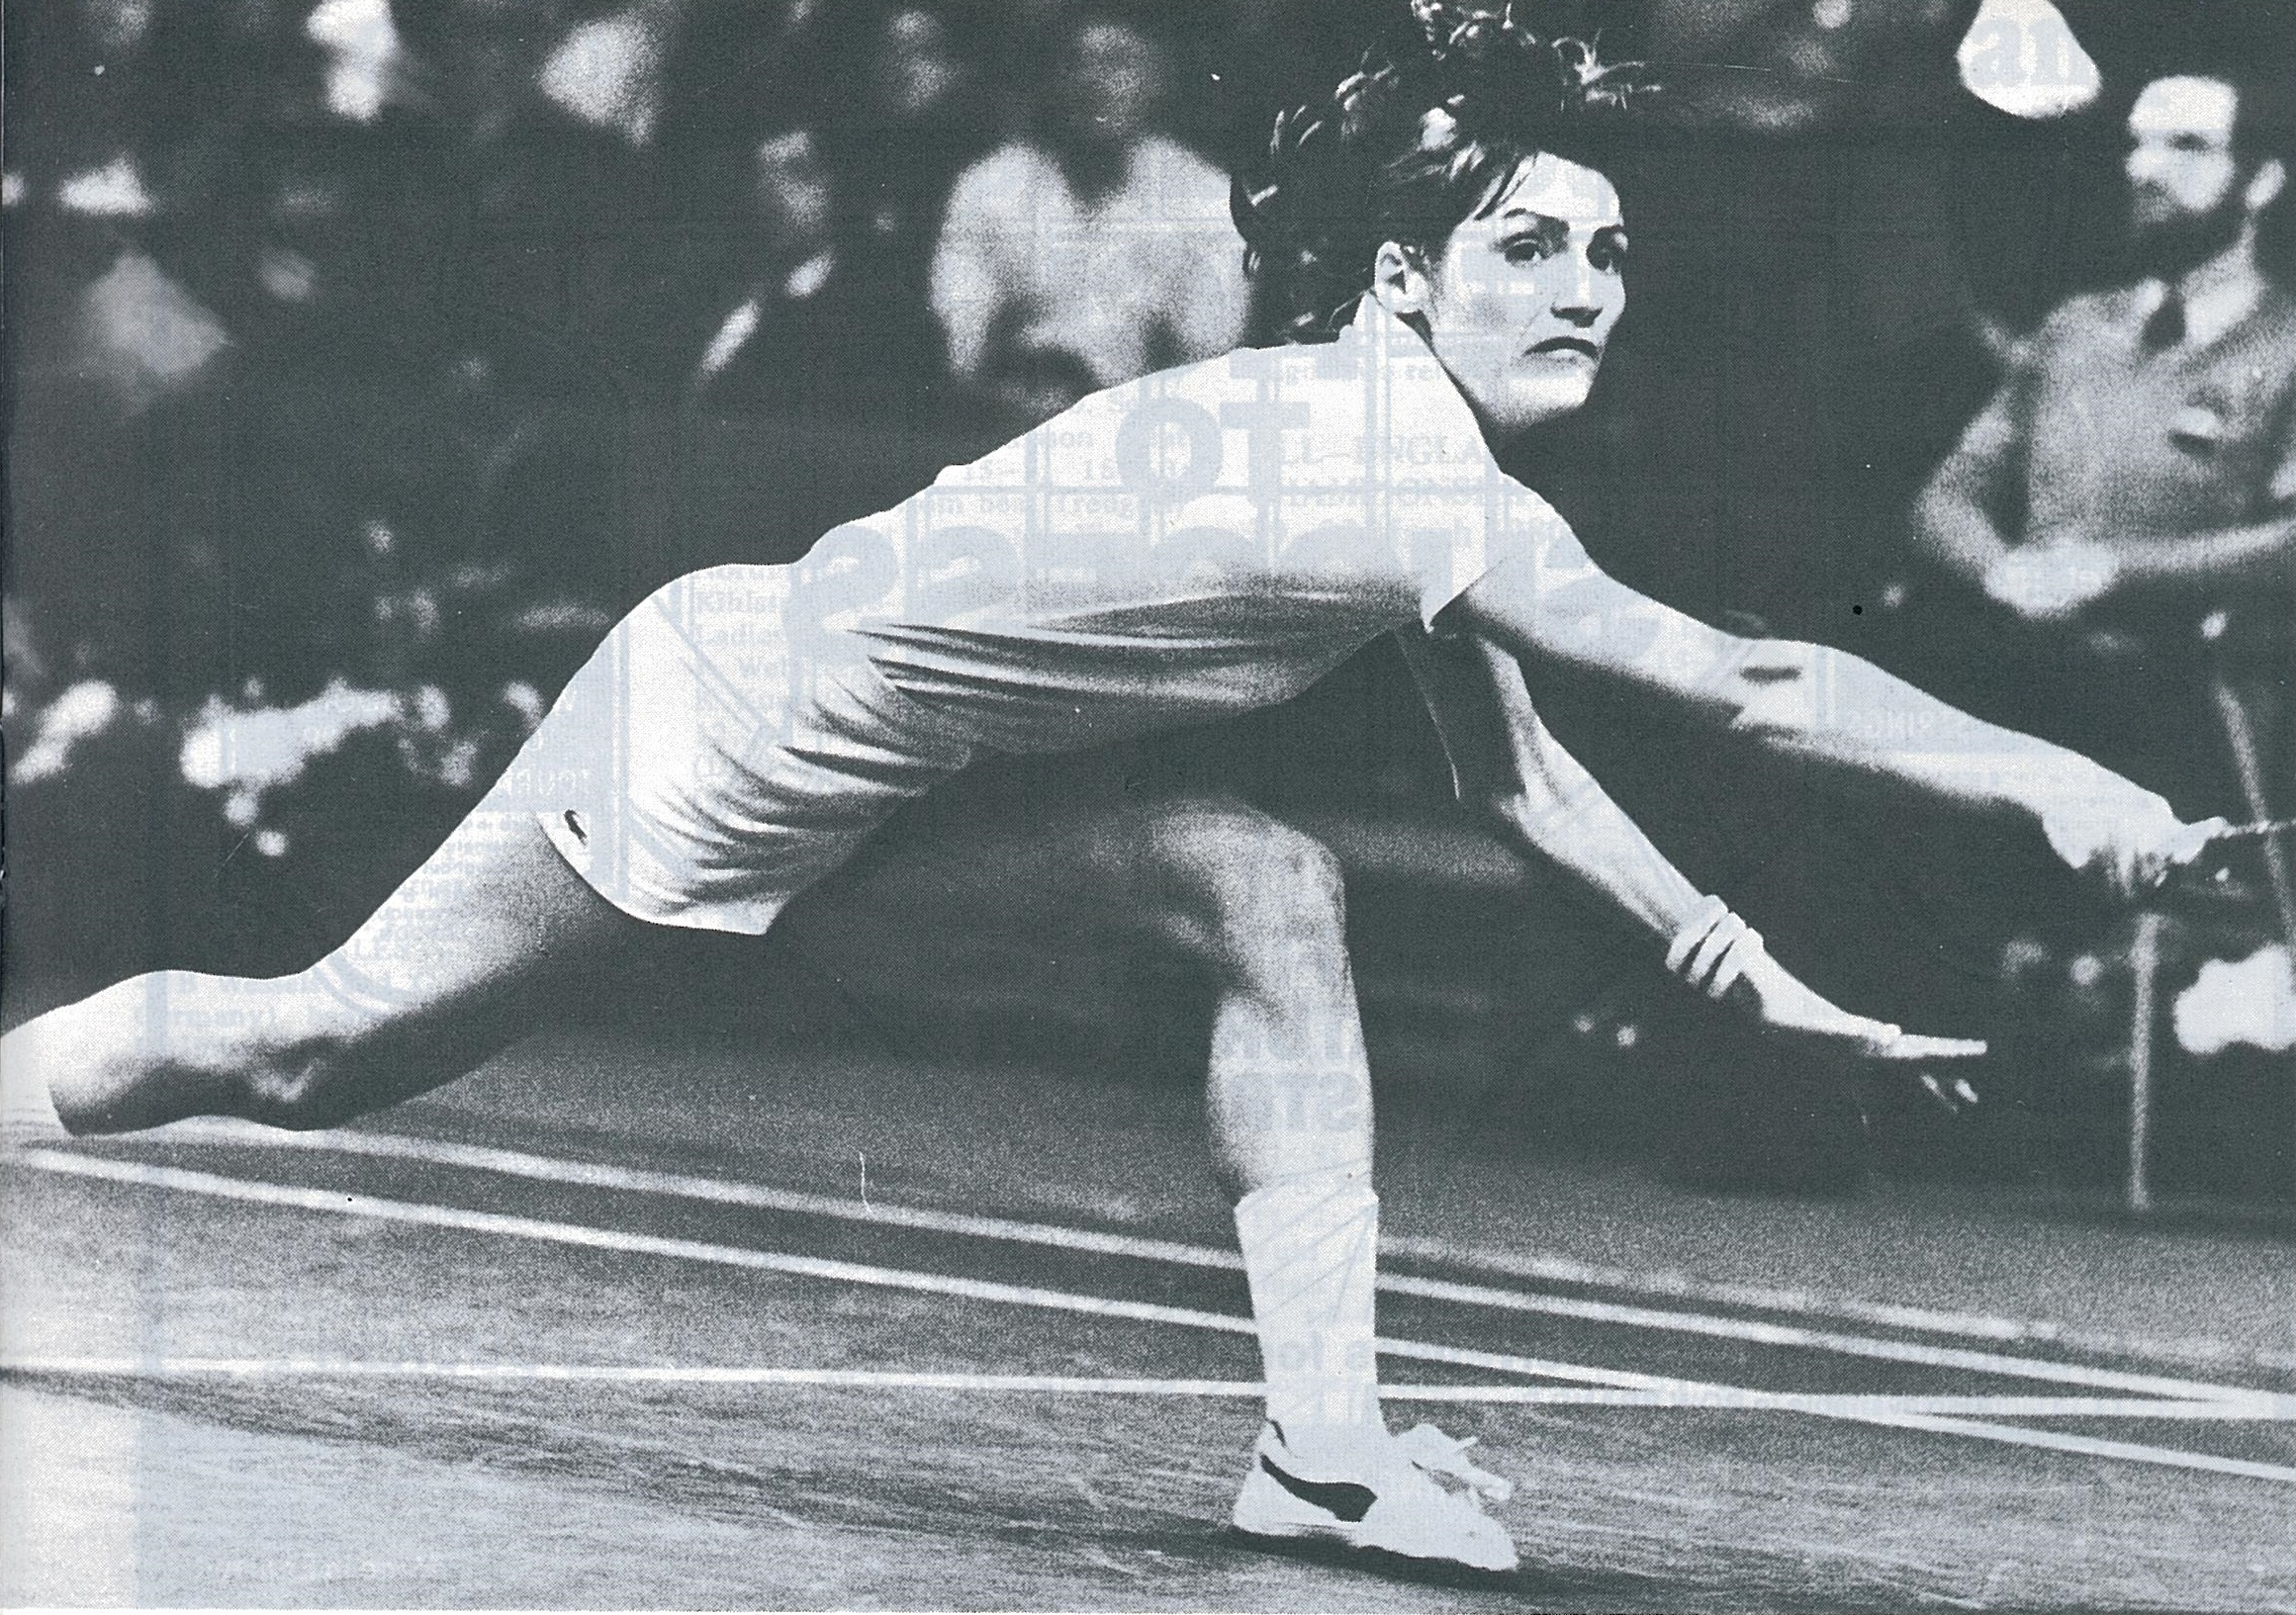 Lene koppen - all england - wb june 1980 - pic by preben soborg